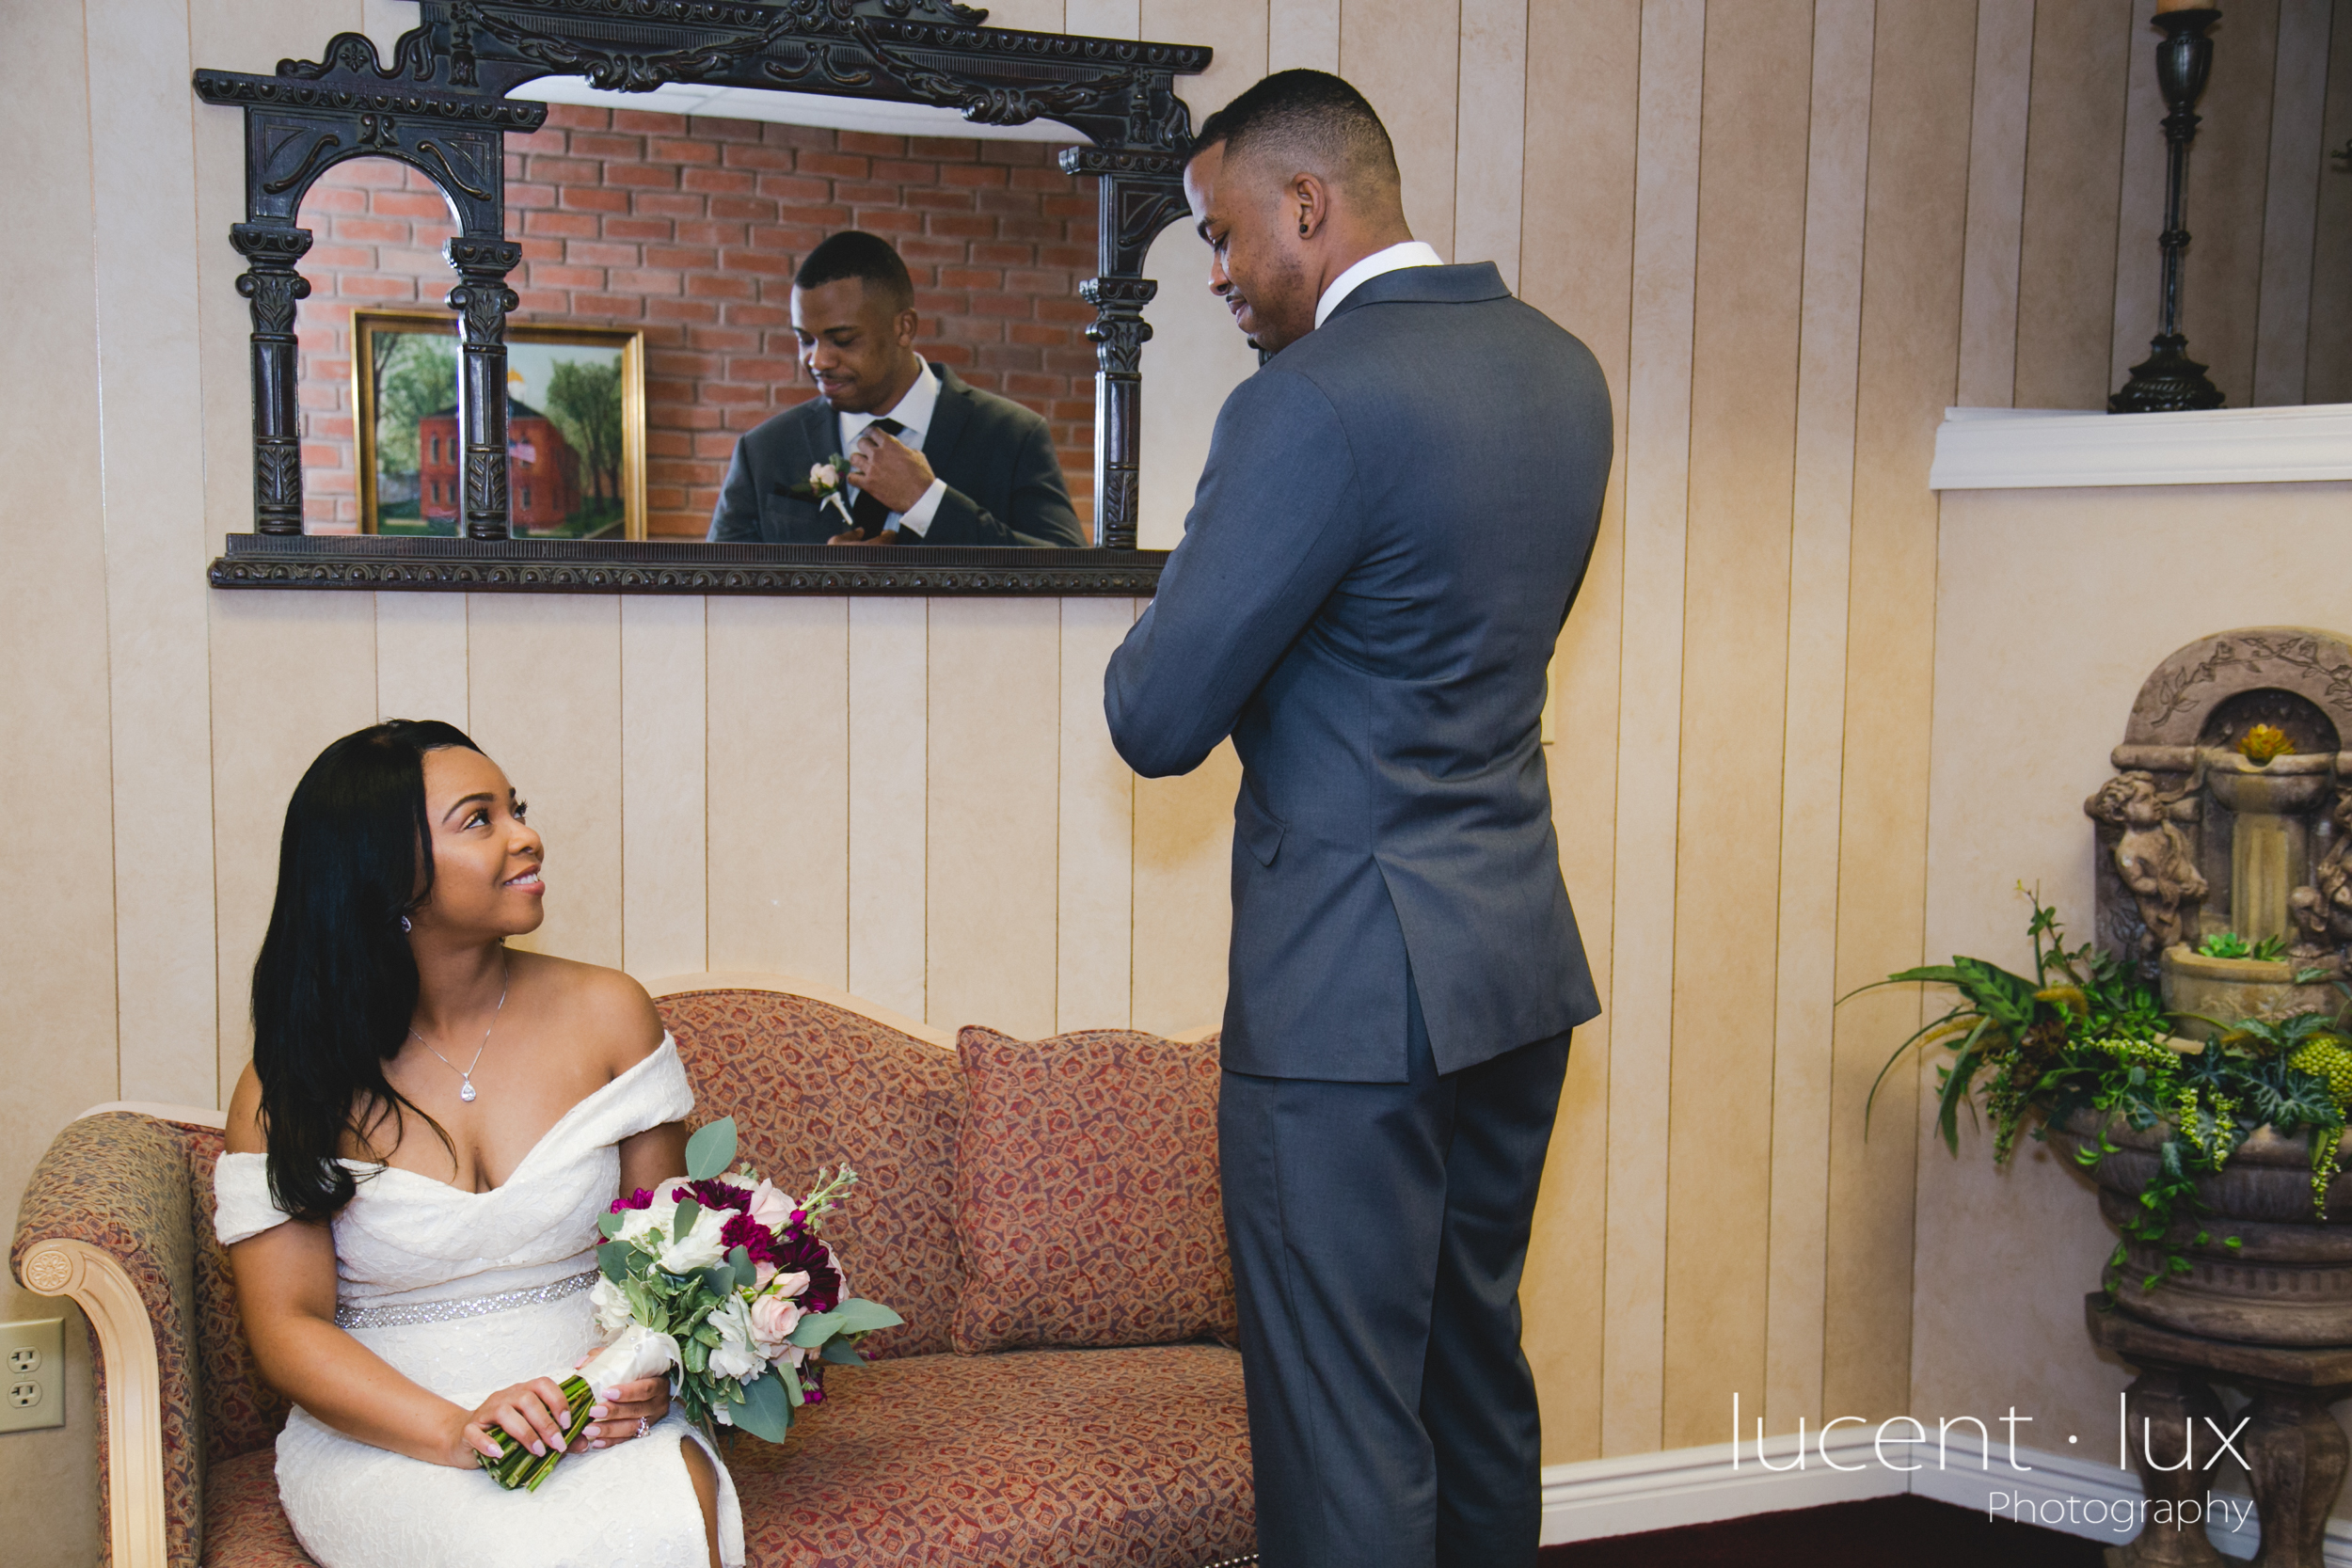 Harford-County-Courthouse-Wedding-Maryland-Photography-Courthouse-Photographer-Baltimore-Portraits-113.jpg